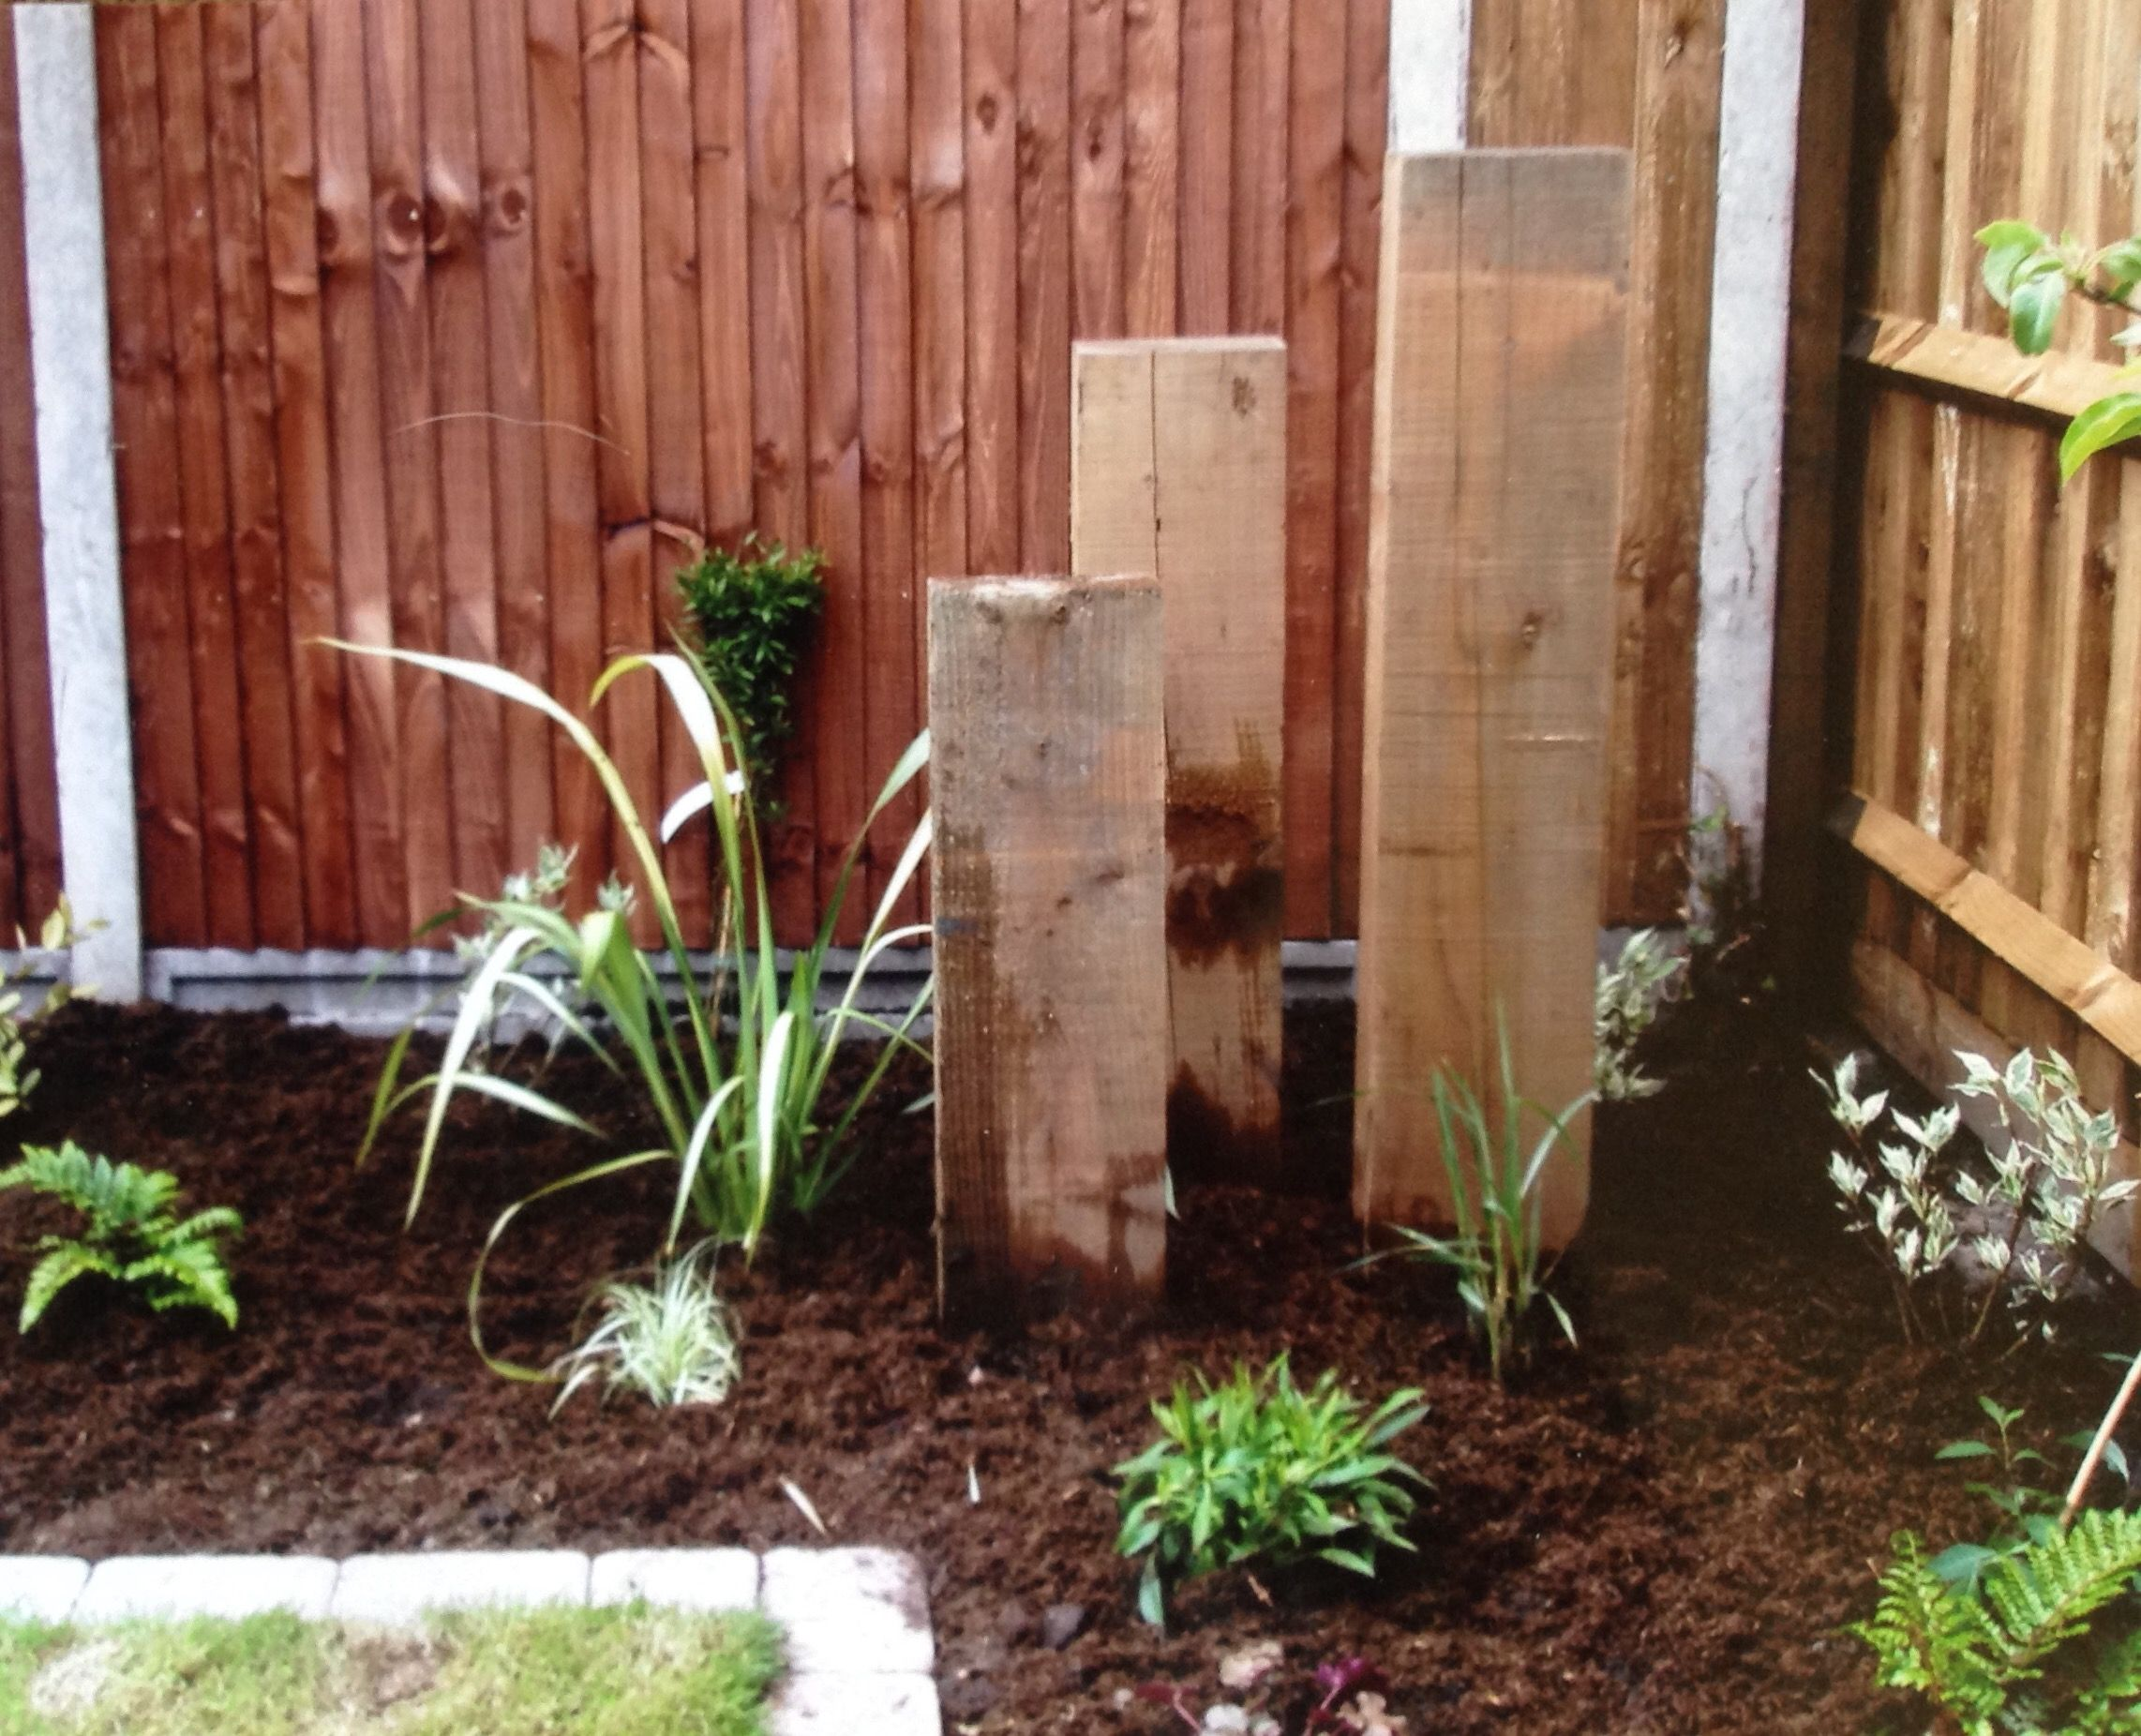 Three upright railway sleepers draw the eye to the corner ...